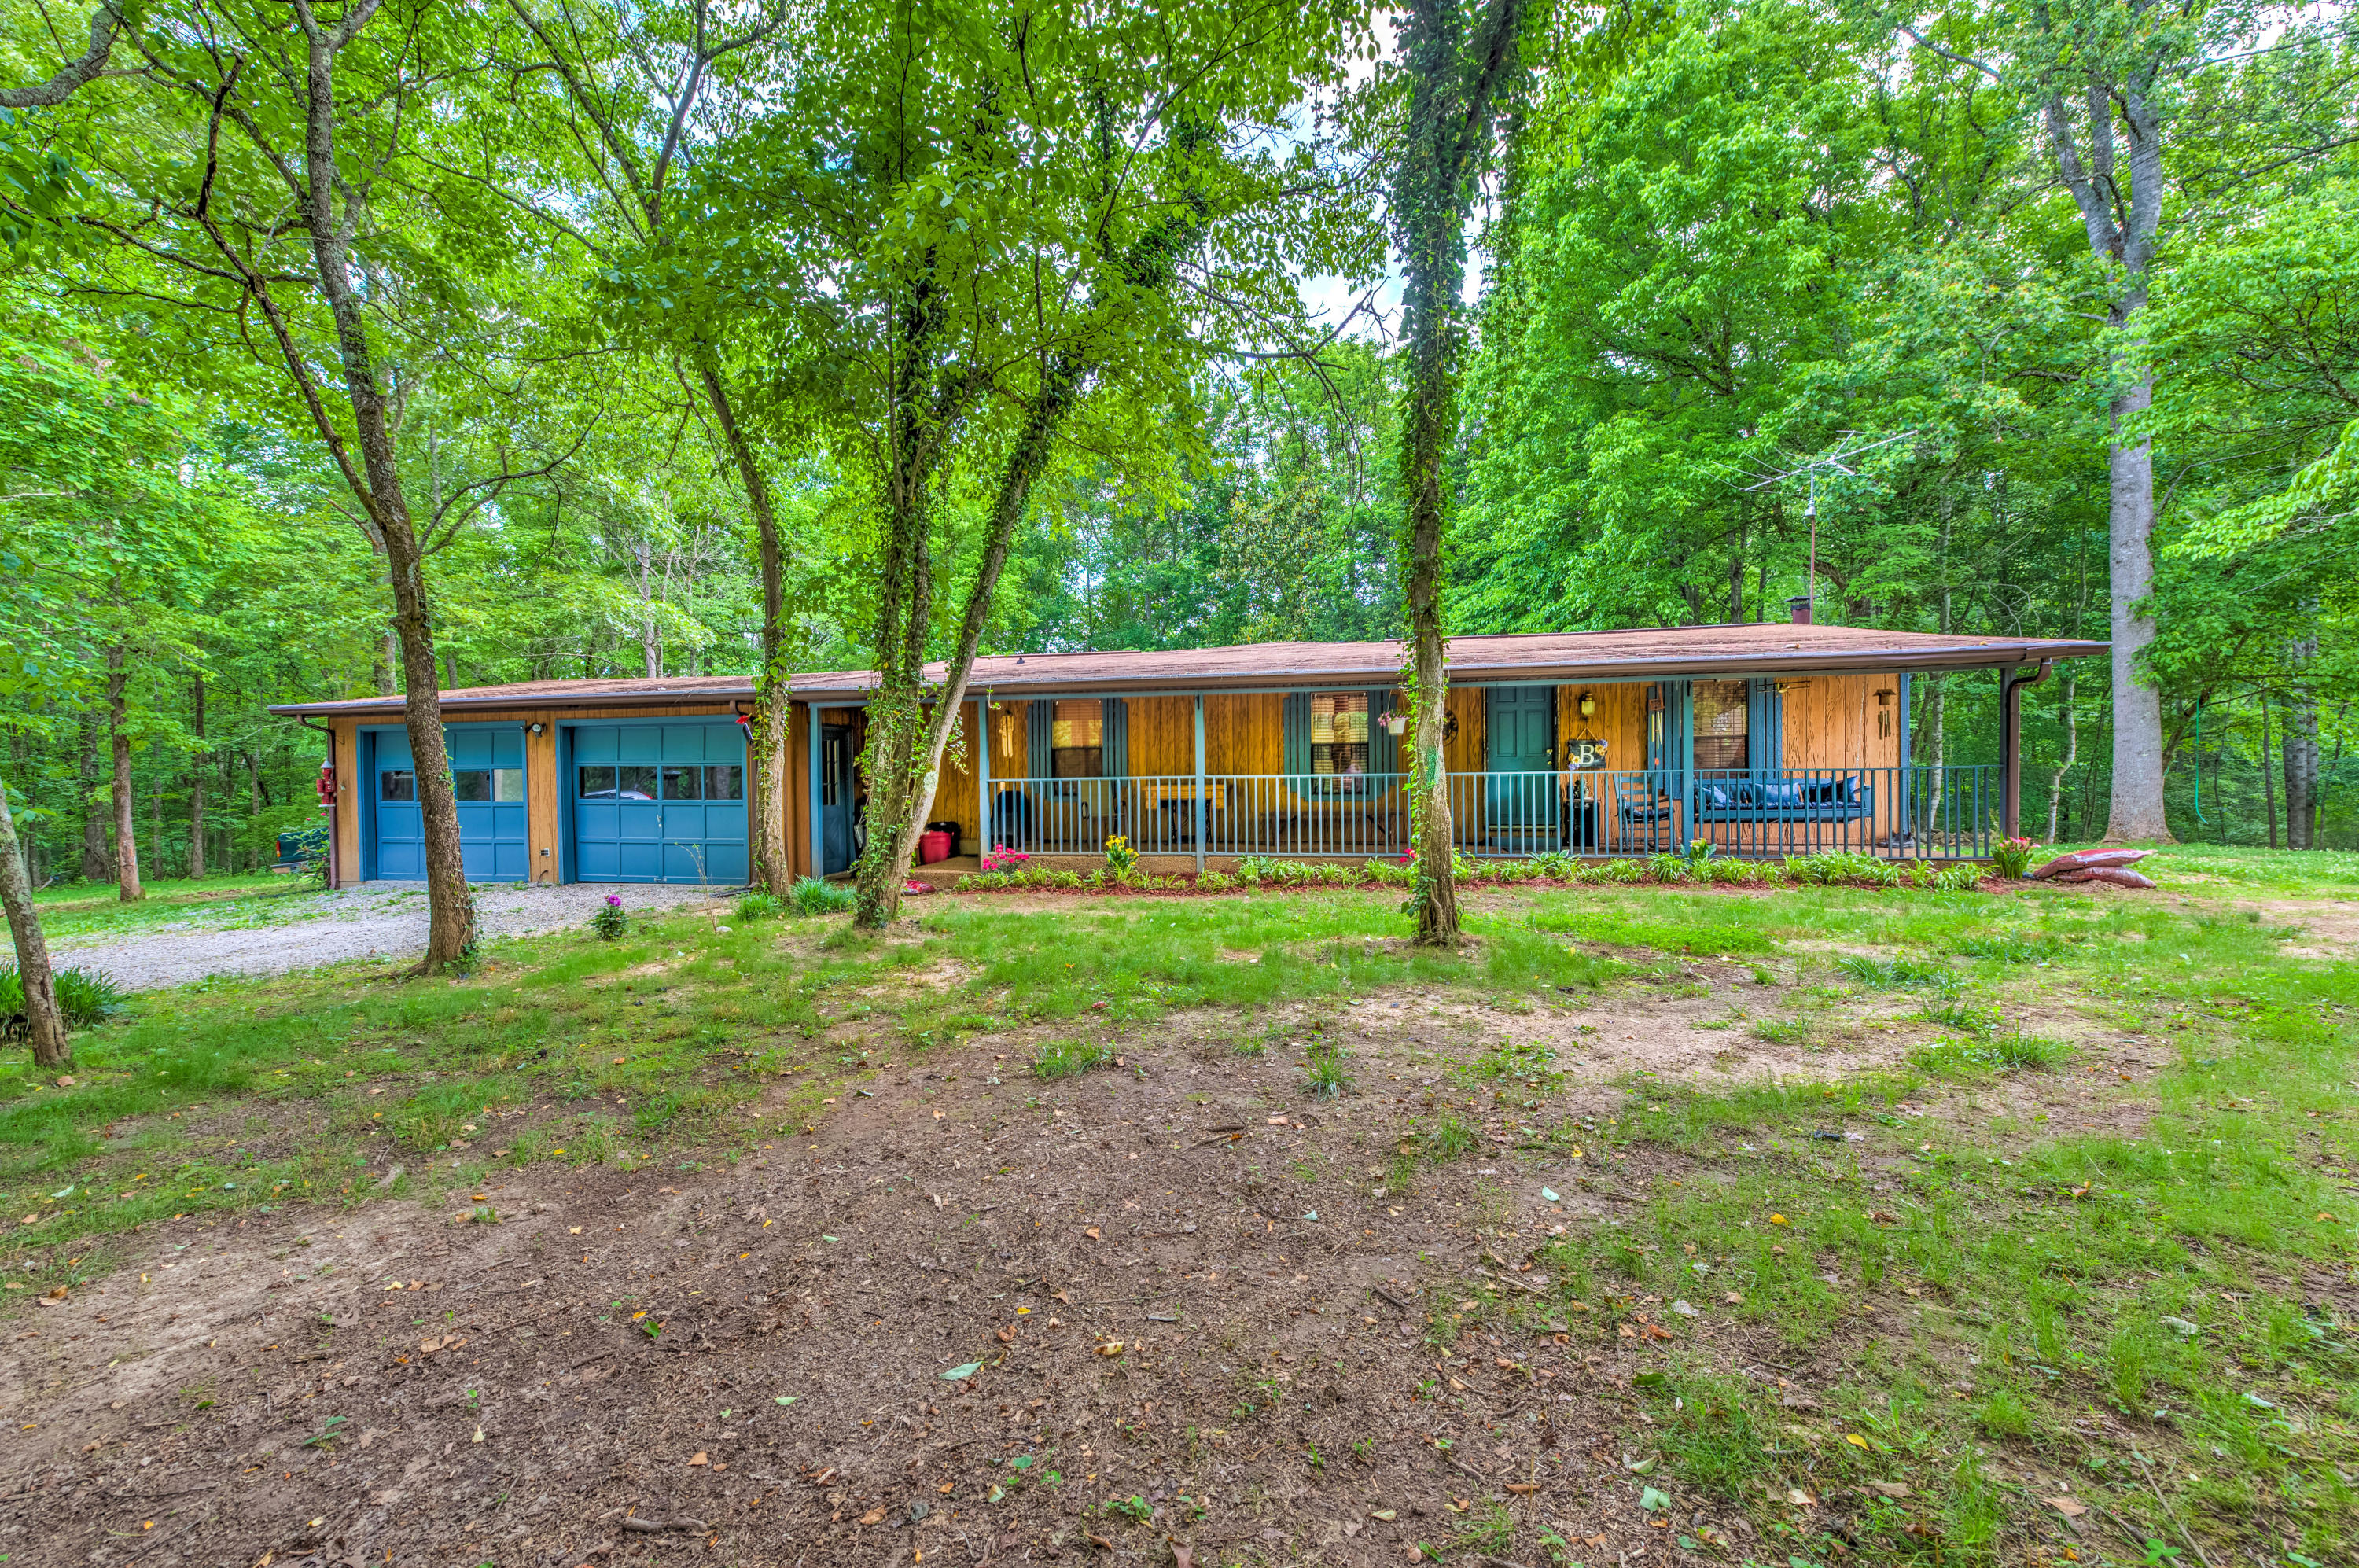 20190522202048761081000000-o Listings anderson county homes for sale